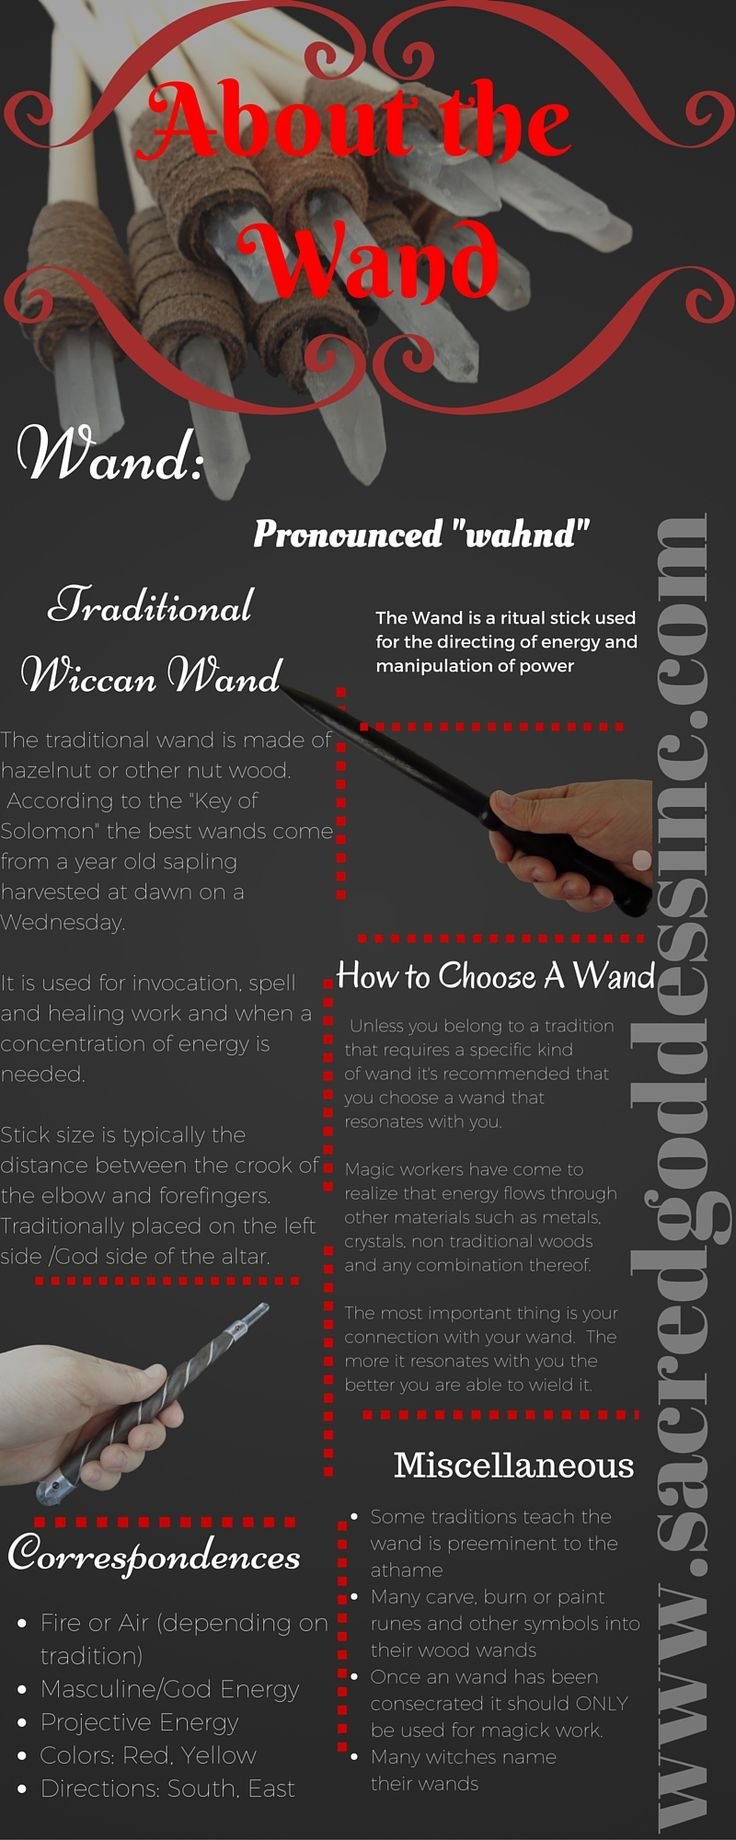 Wicca For Beginners  Magic Magick Wand Correspondences & Other  Follow Us For More